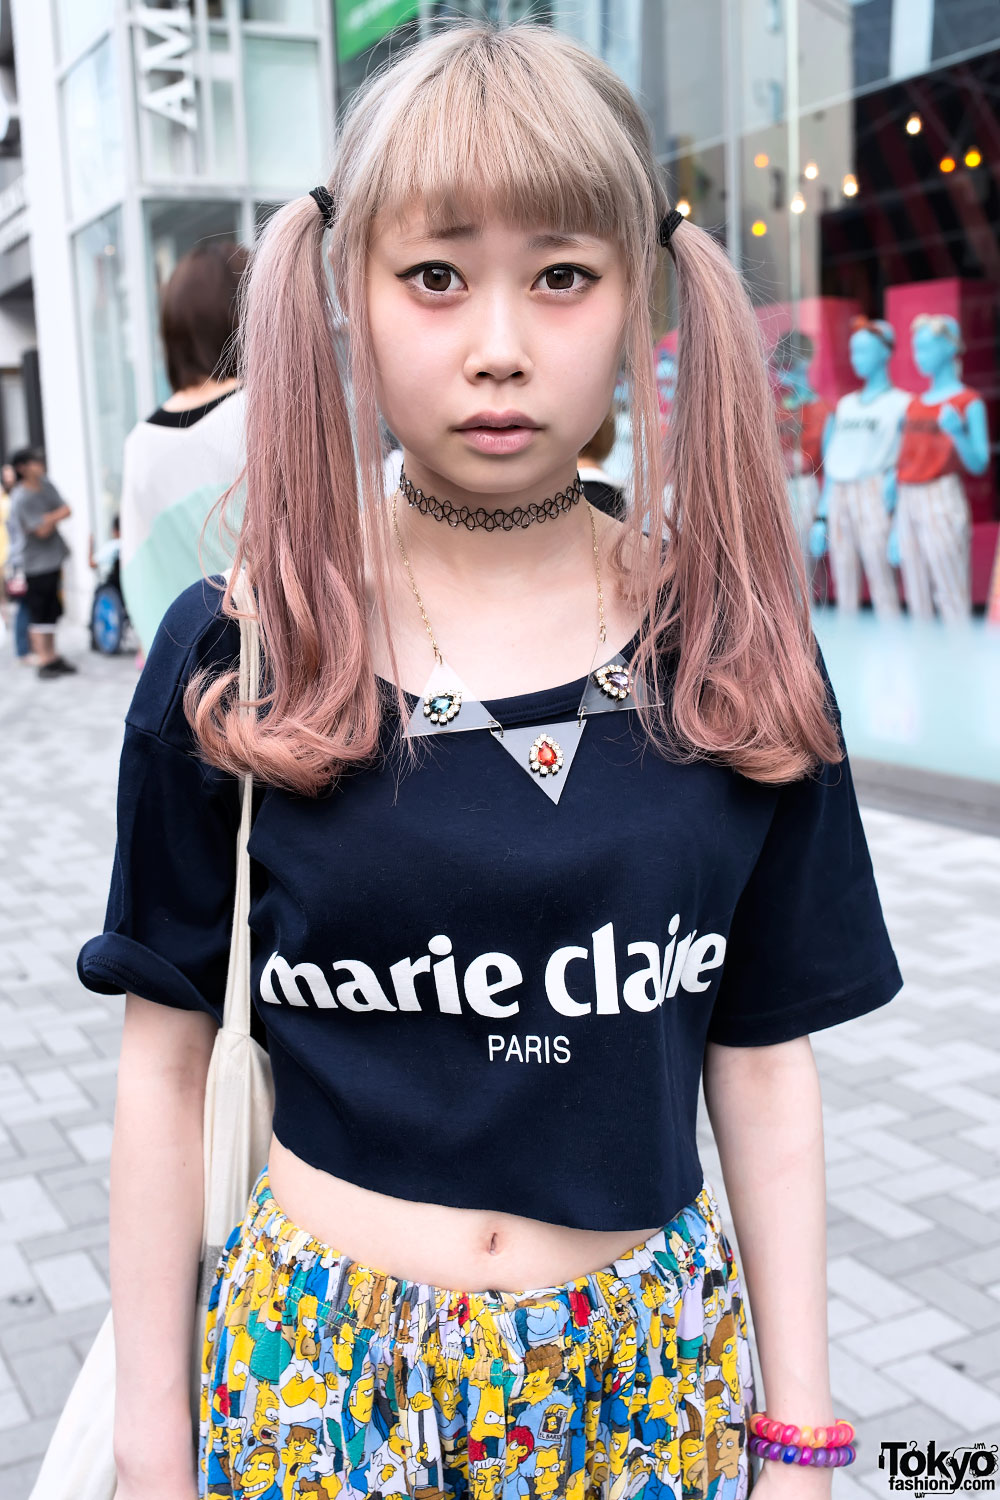 Cute Japanese Twintails Hairstyle Amp Crop Top Tokyo